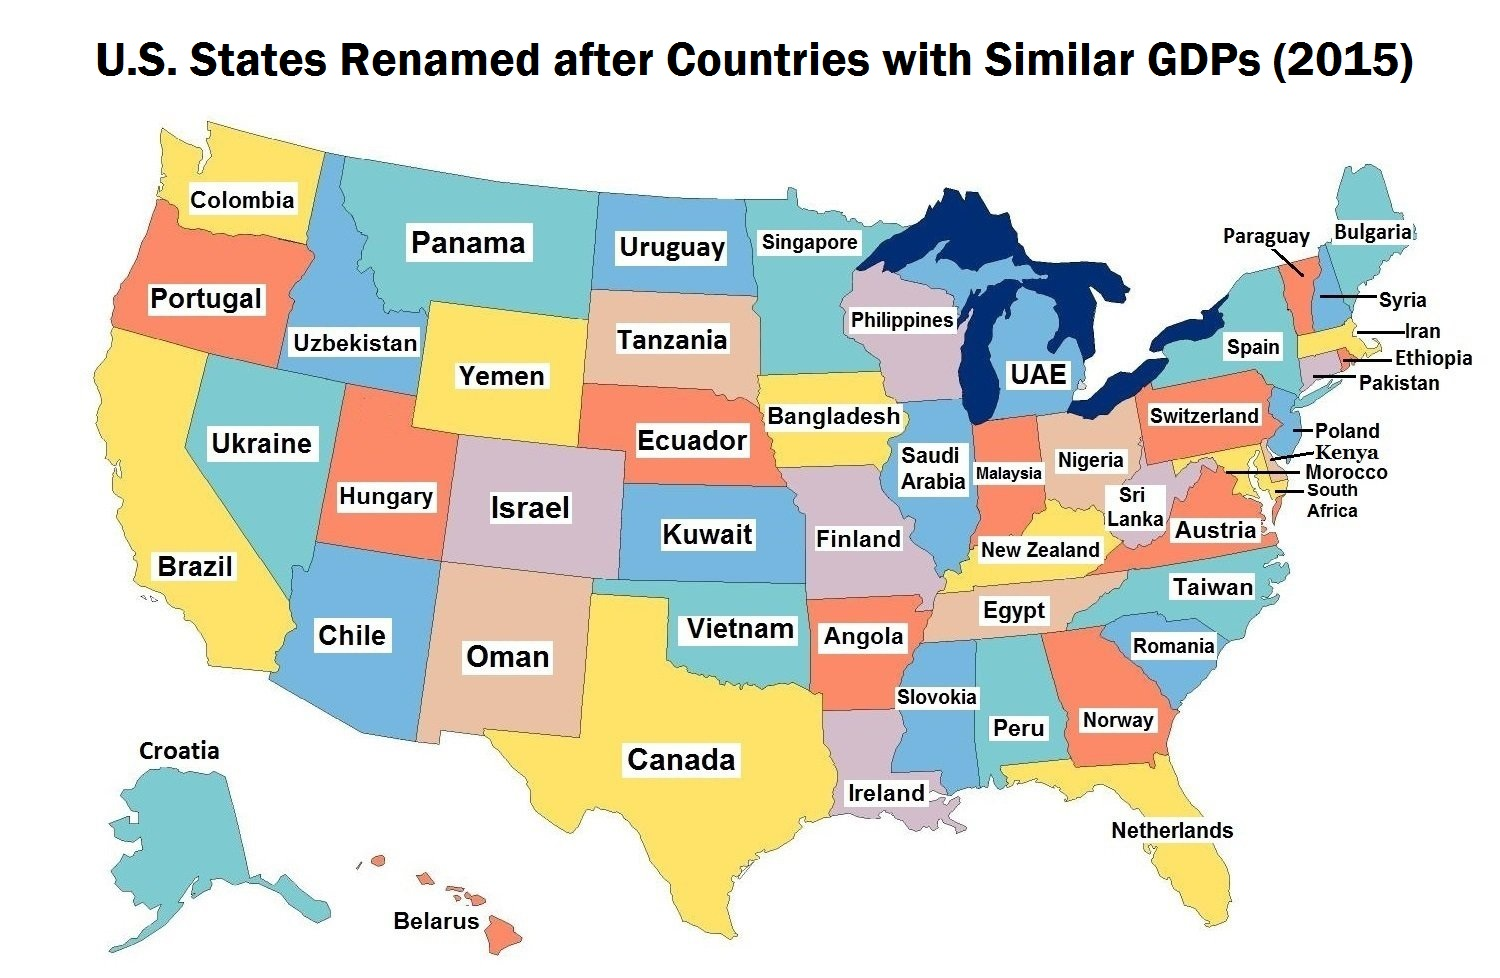 USA States Renamed after countries similar GDP (2015)